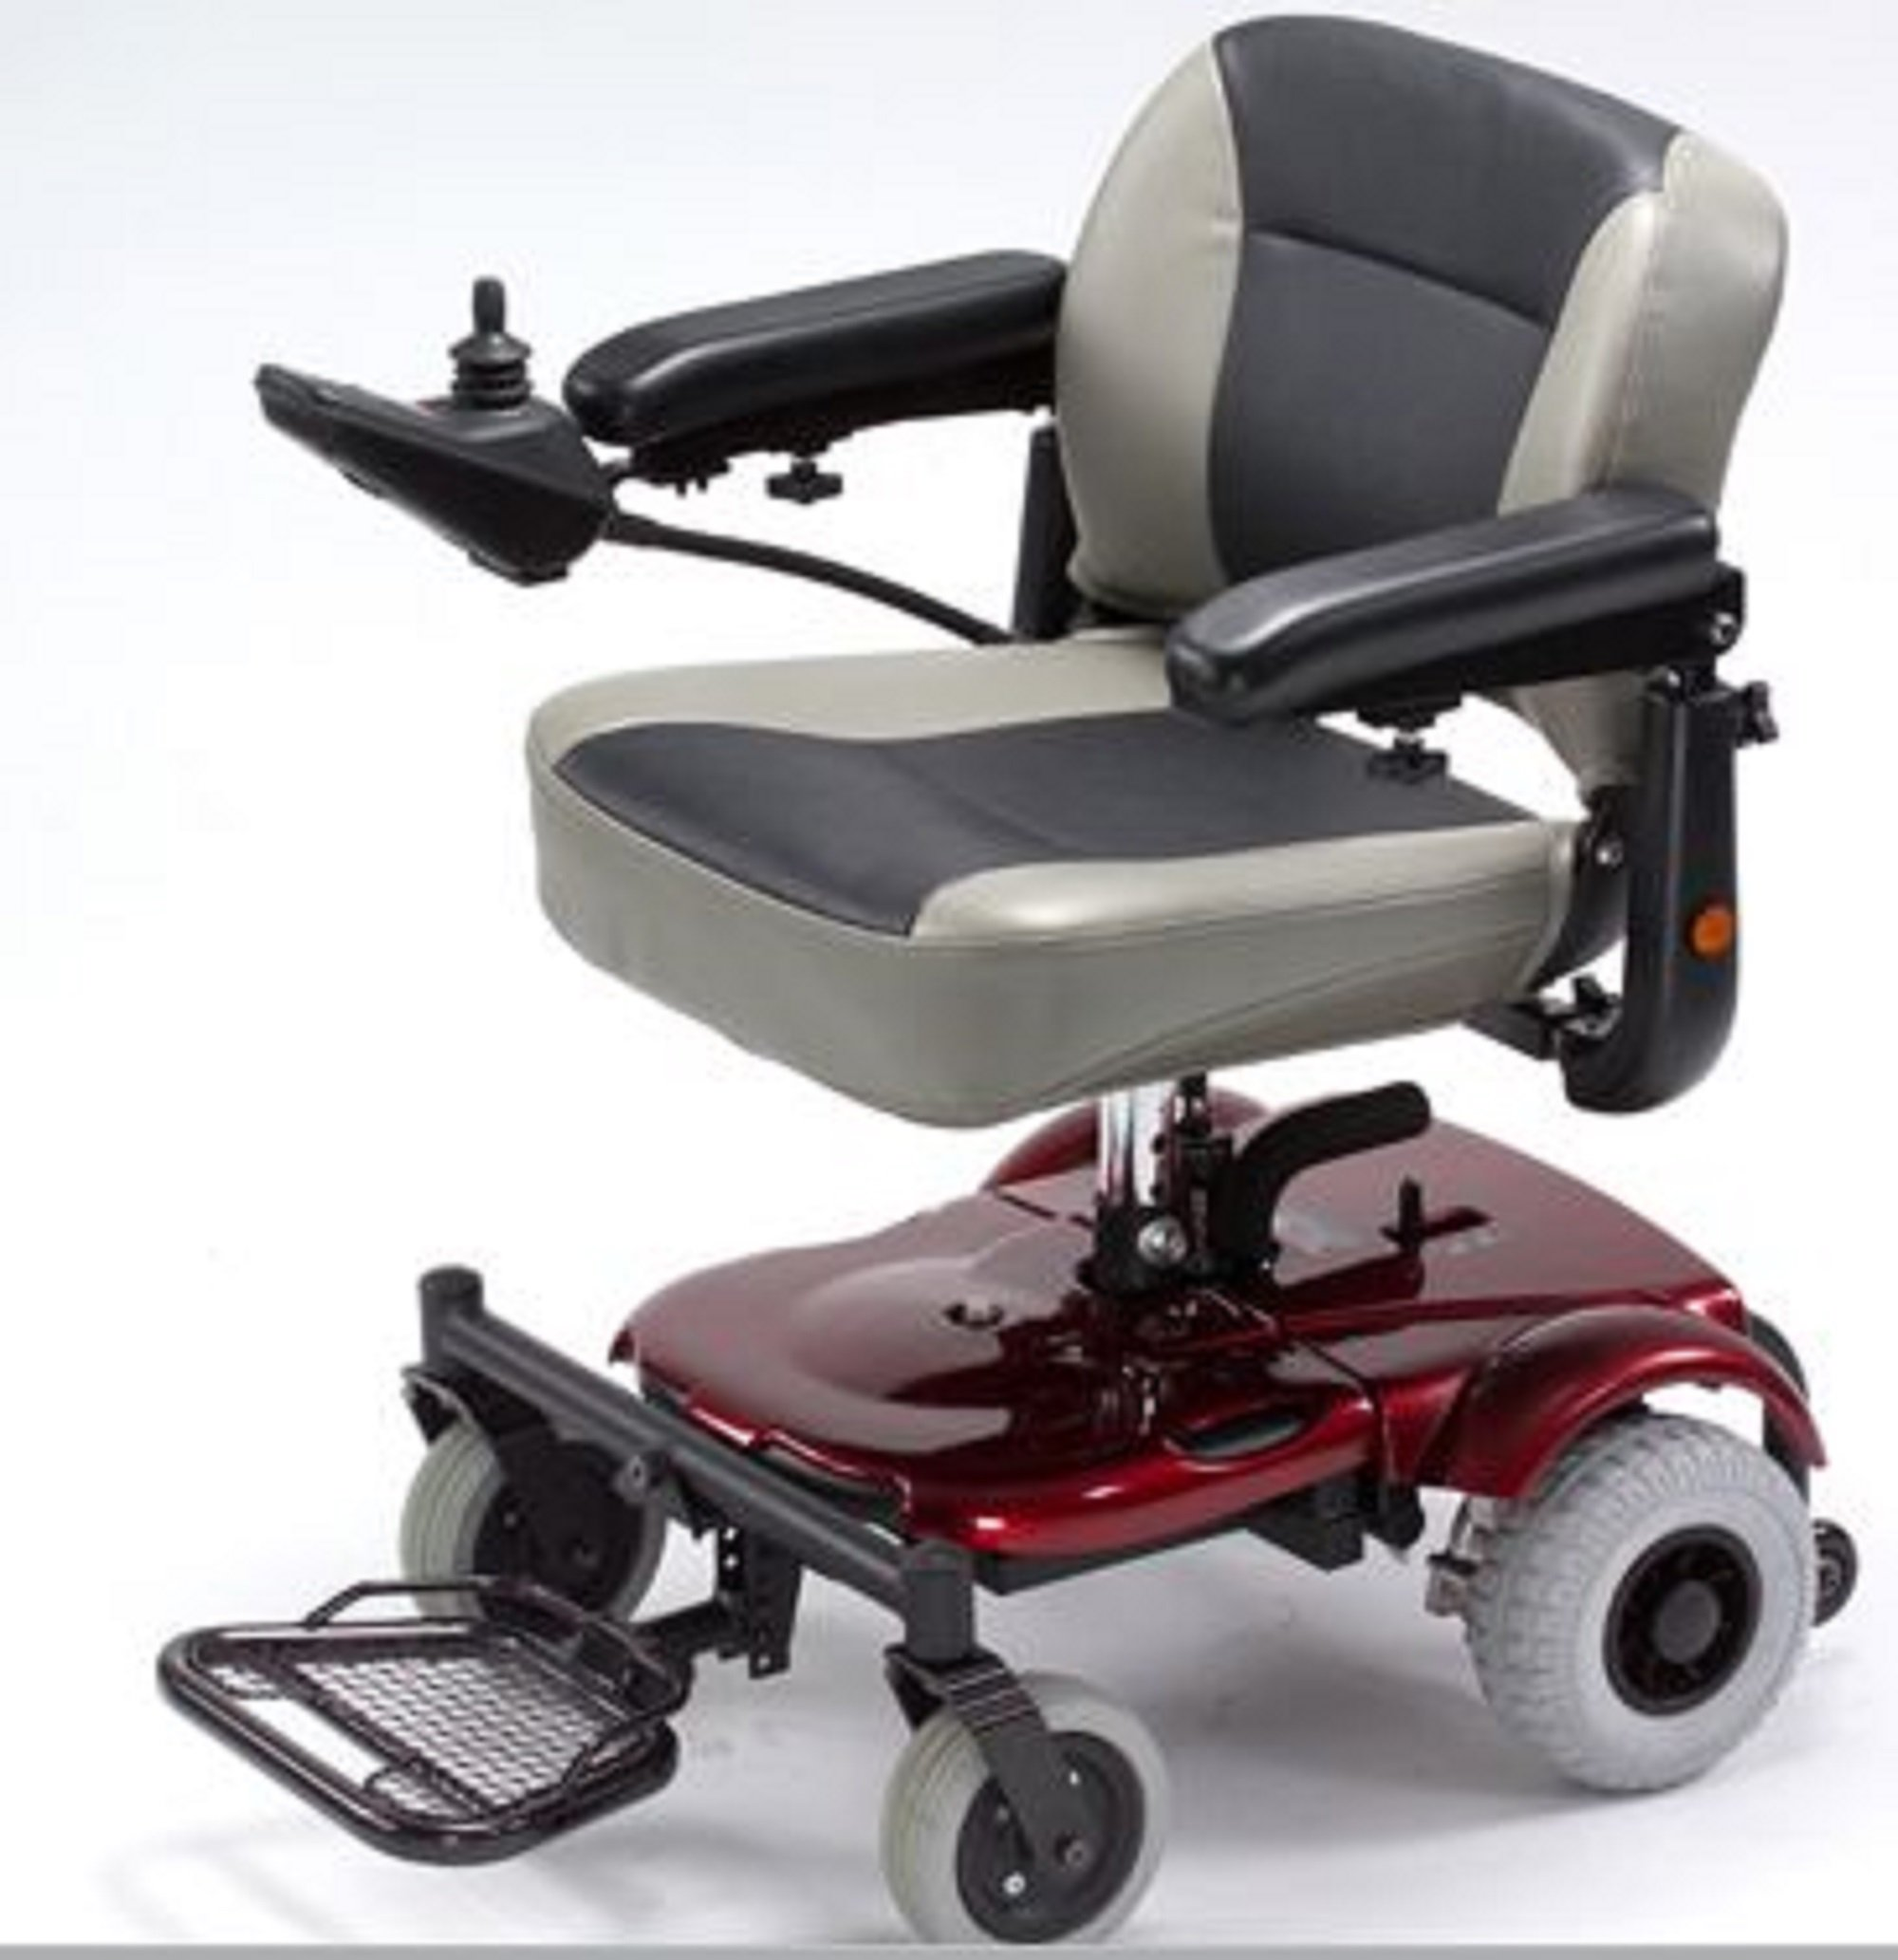 Merits Health Products - EZ-GO- Travel Power Chair - 18''W x 15''D - Red